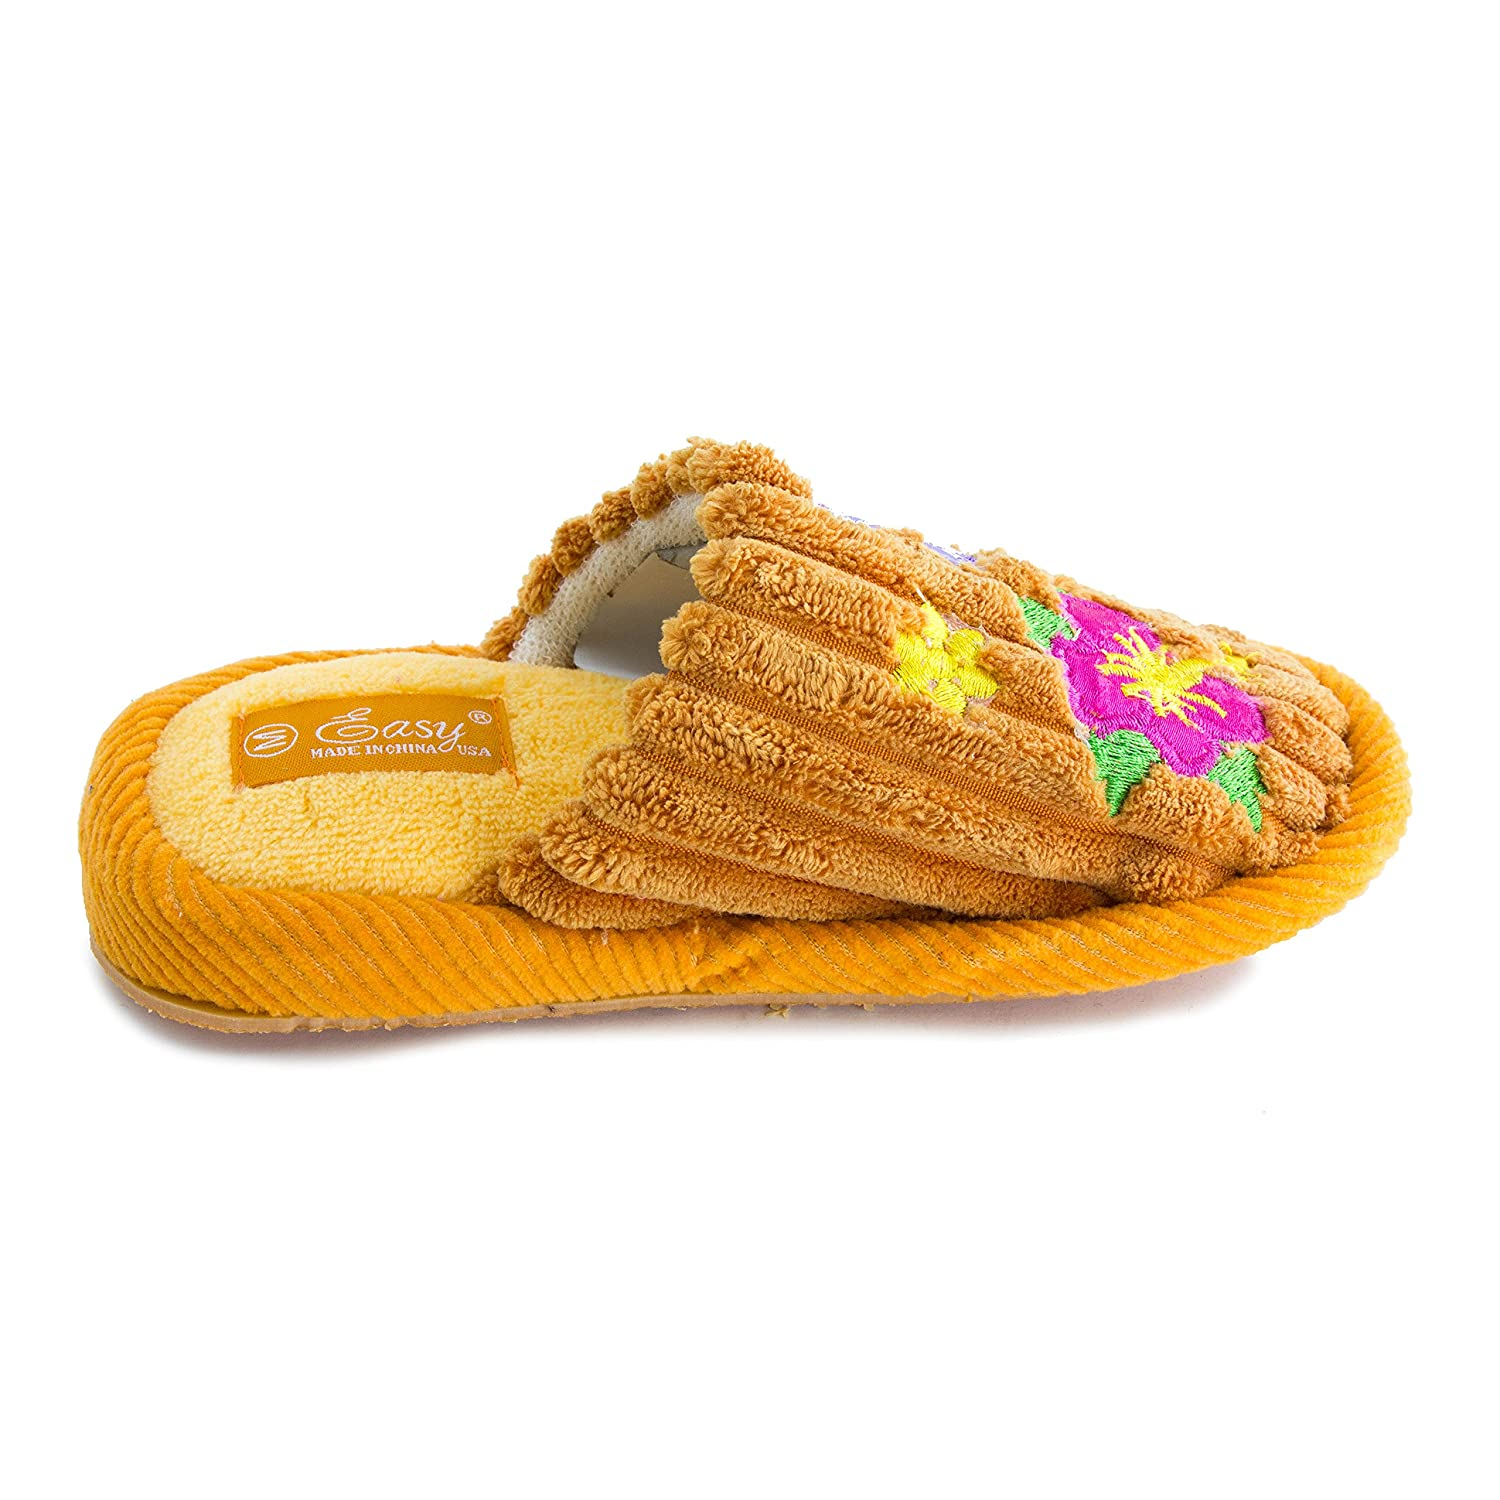 Unisex Kids Floral Winter Comfort House Slippers